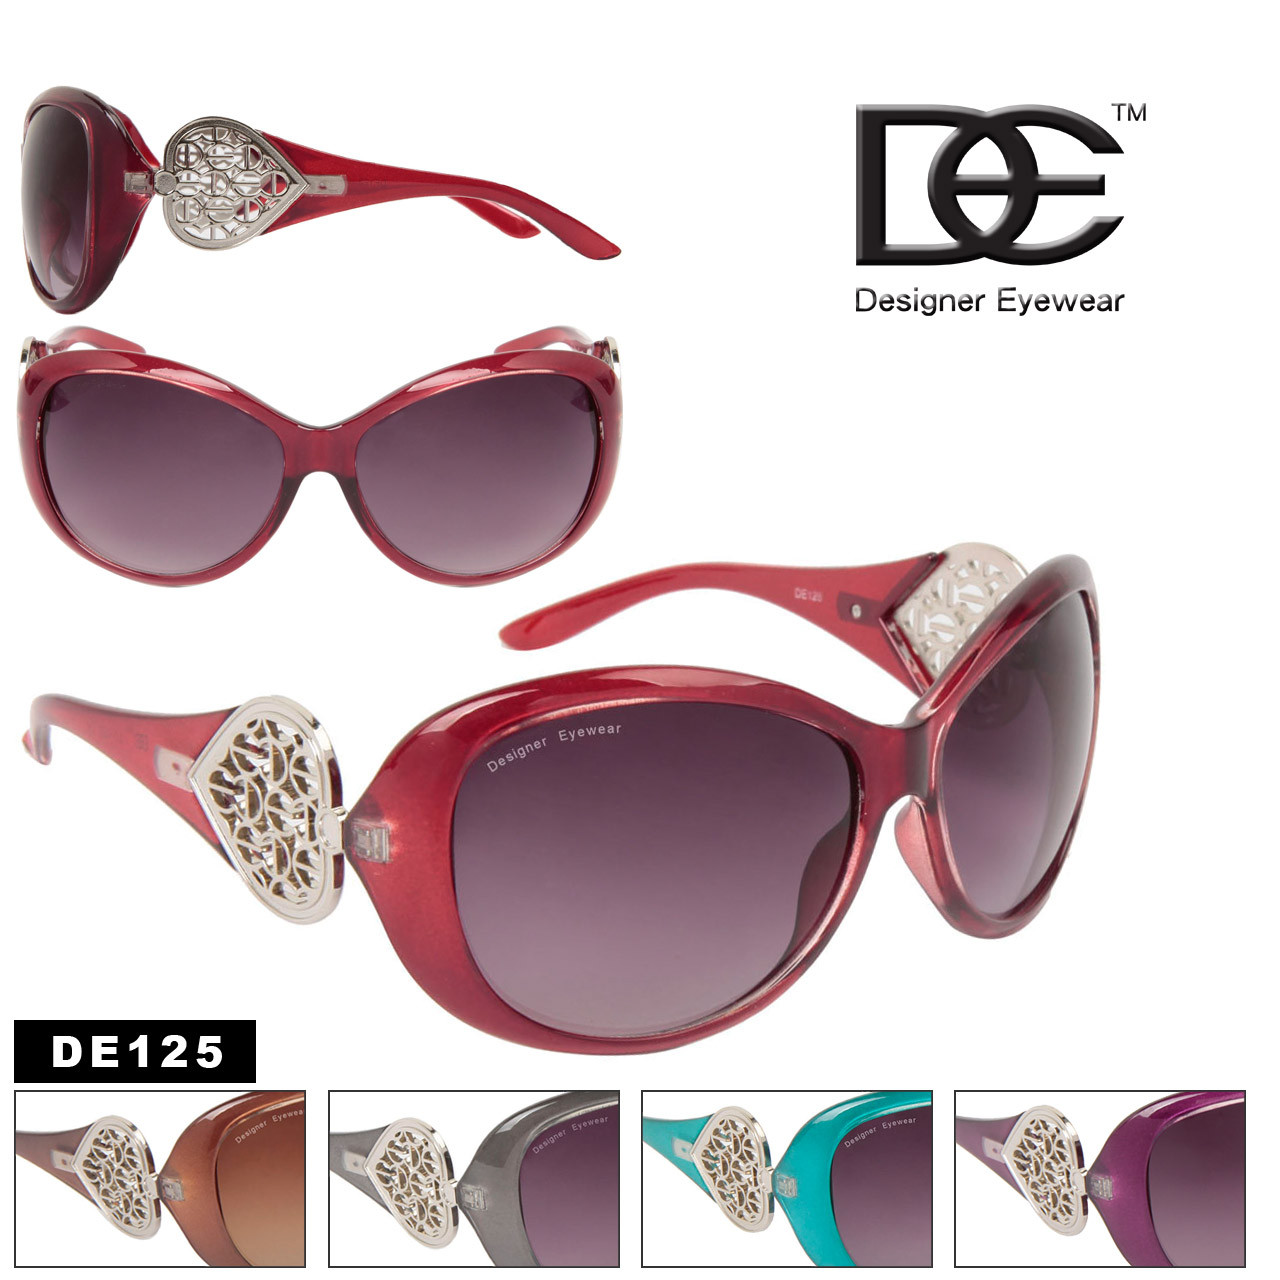 Fashion Sunglasses by Designer Eyewear DE125